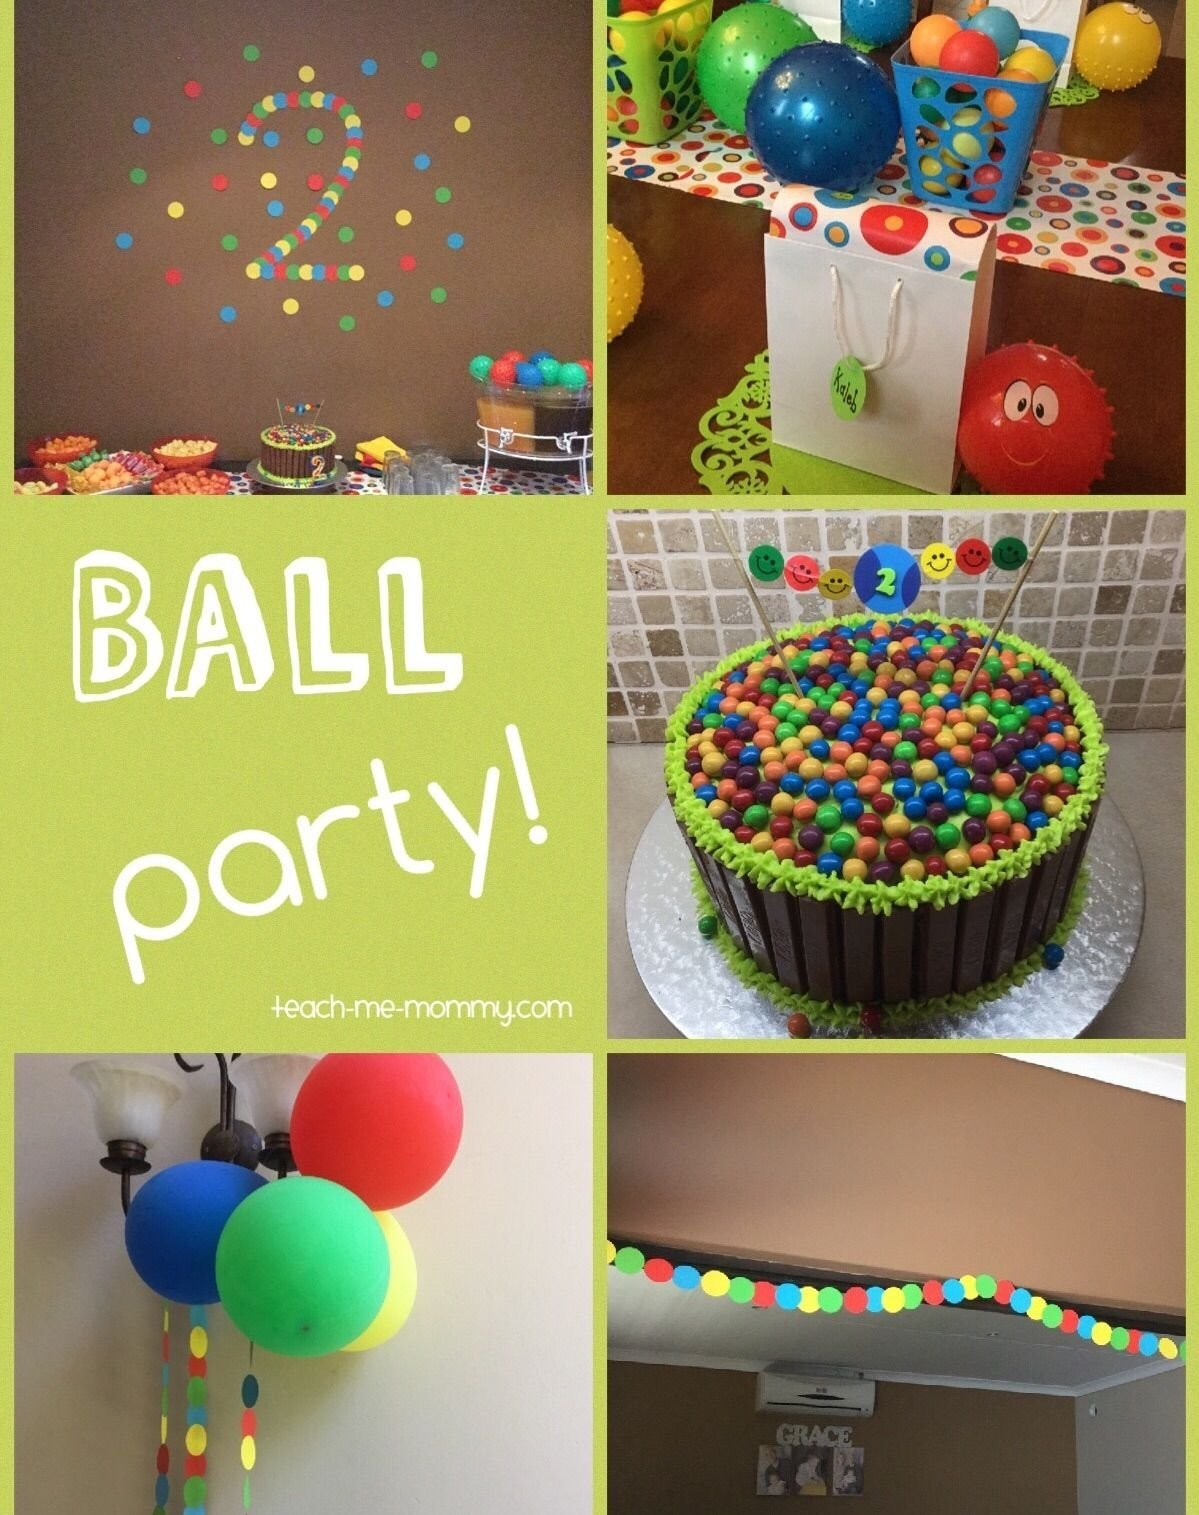 10 Amazing 3Rd Birthday Party Ideas For Boys Ball Themed A 2 Year Old